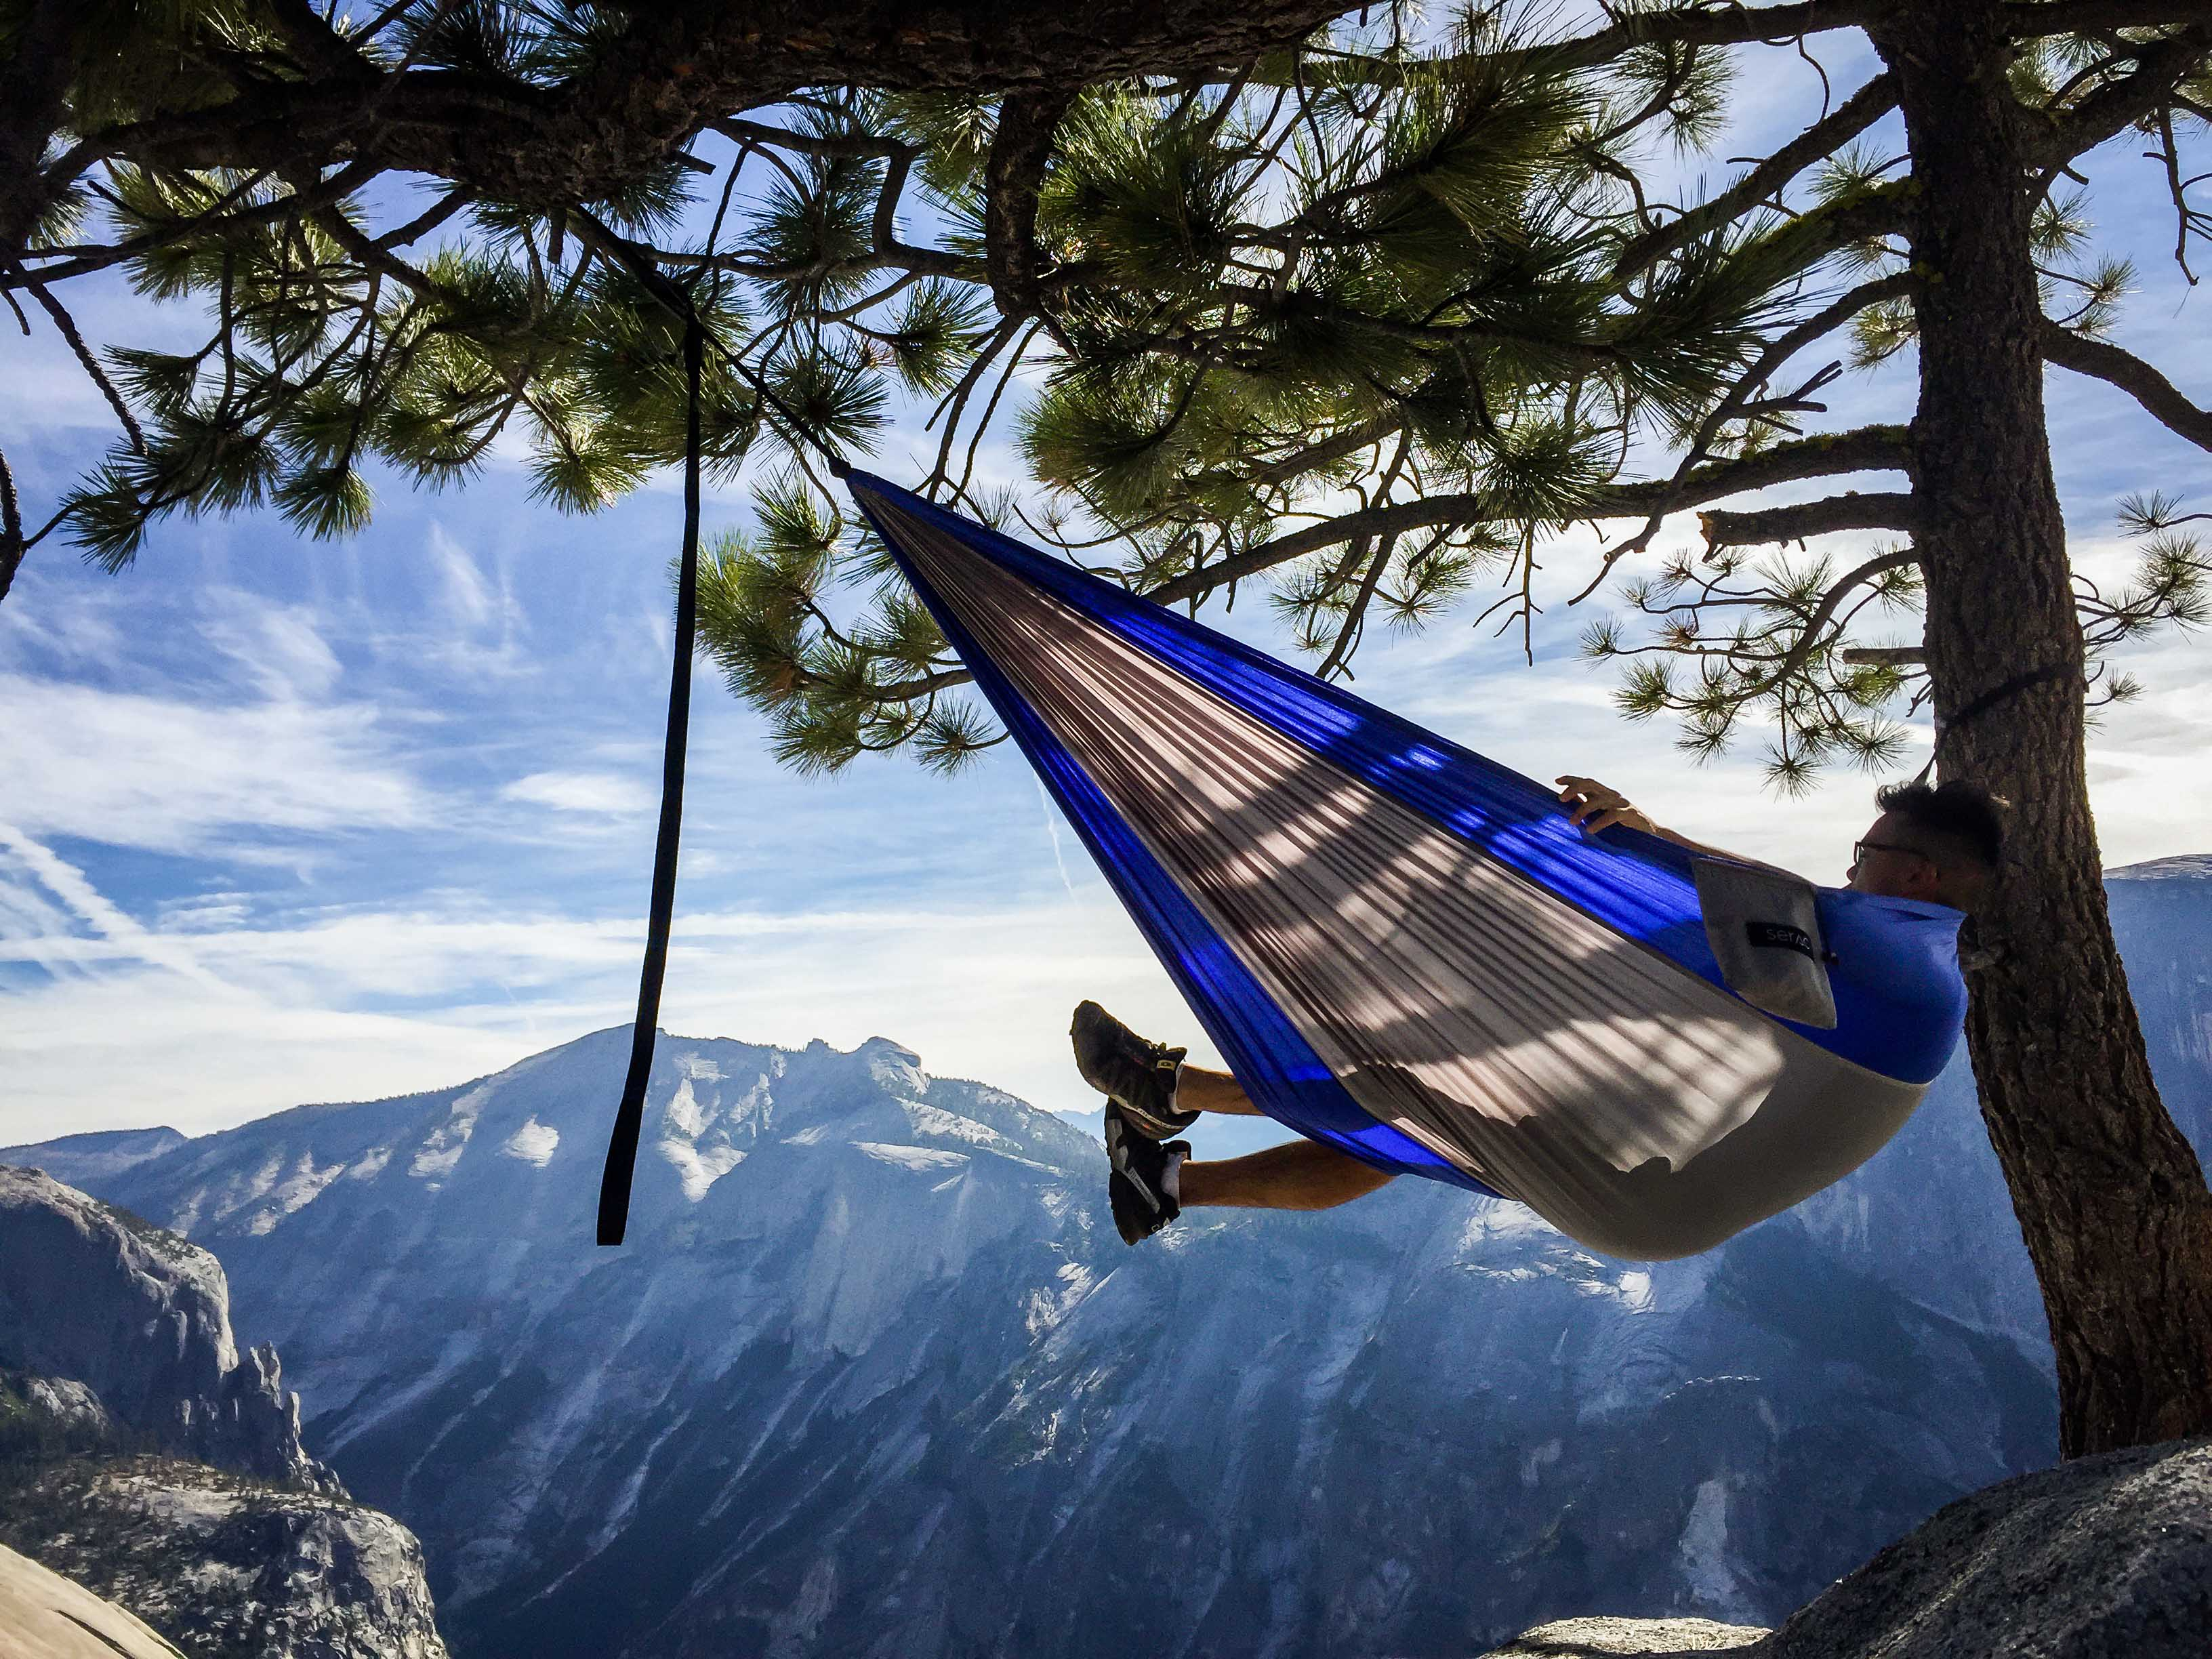 Hanging in a Serac Ultralight Camping hammock on North Dome, Yosemite National Park